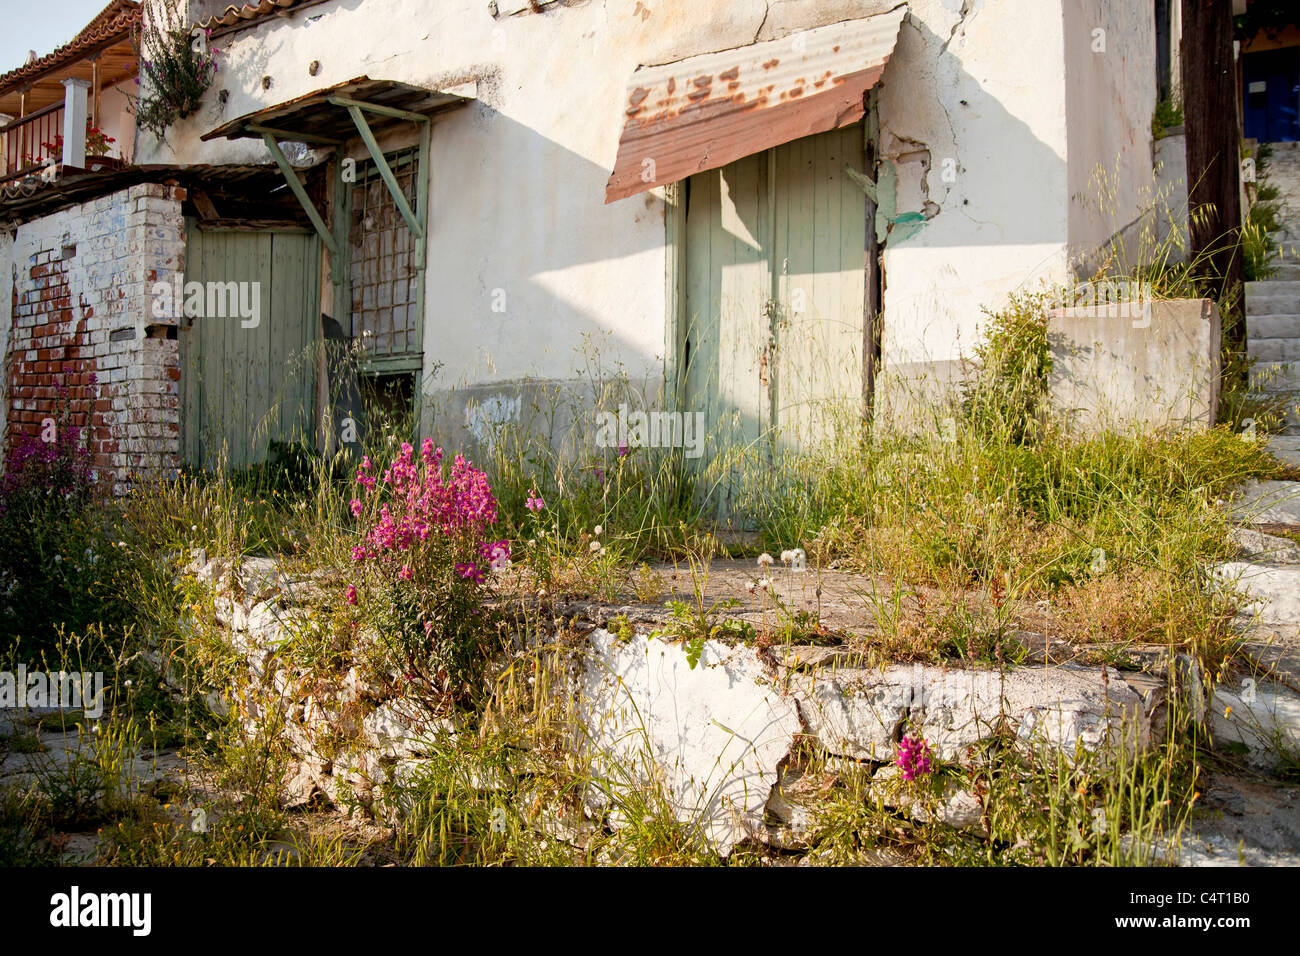 dilapidated house in the small mountain village Glossa, Skopelos Island, Northern Sporades, Greece - Stock Image